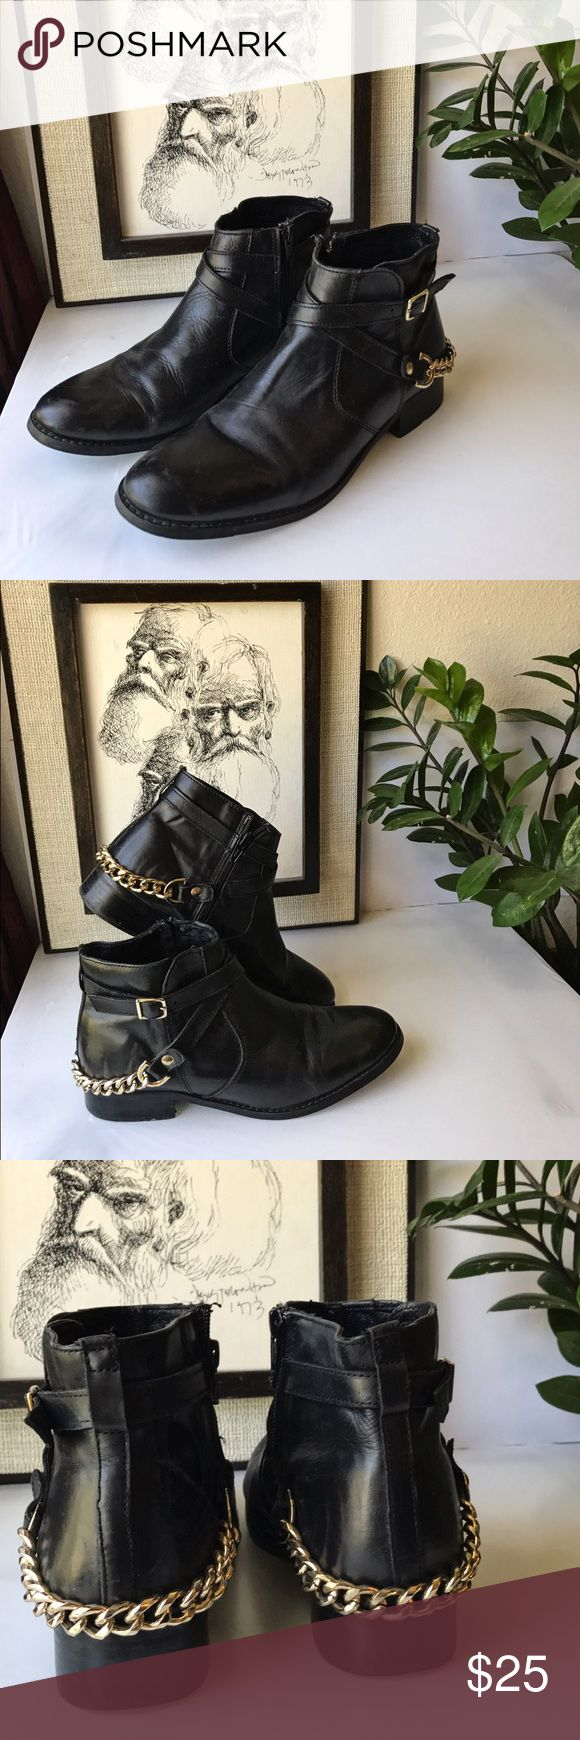 """Steve Madden Ringo Chained Ankle Boots You'll love these trendy fashionable shoes. Leather upper with a rounded toe. Gold chain adds a little edge to your outfit. Measurements: Shaft Measures 4"""", Circumference Measures 9"""" And 1"""" Heel Steve Madden Shoes Ankle Boots & Booties"""